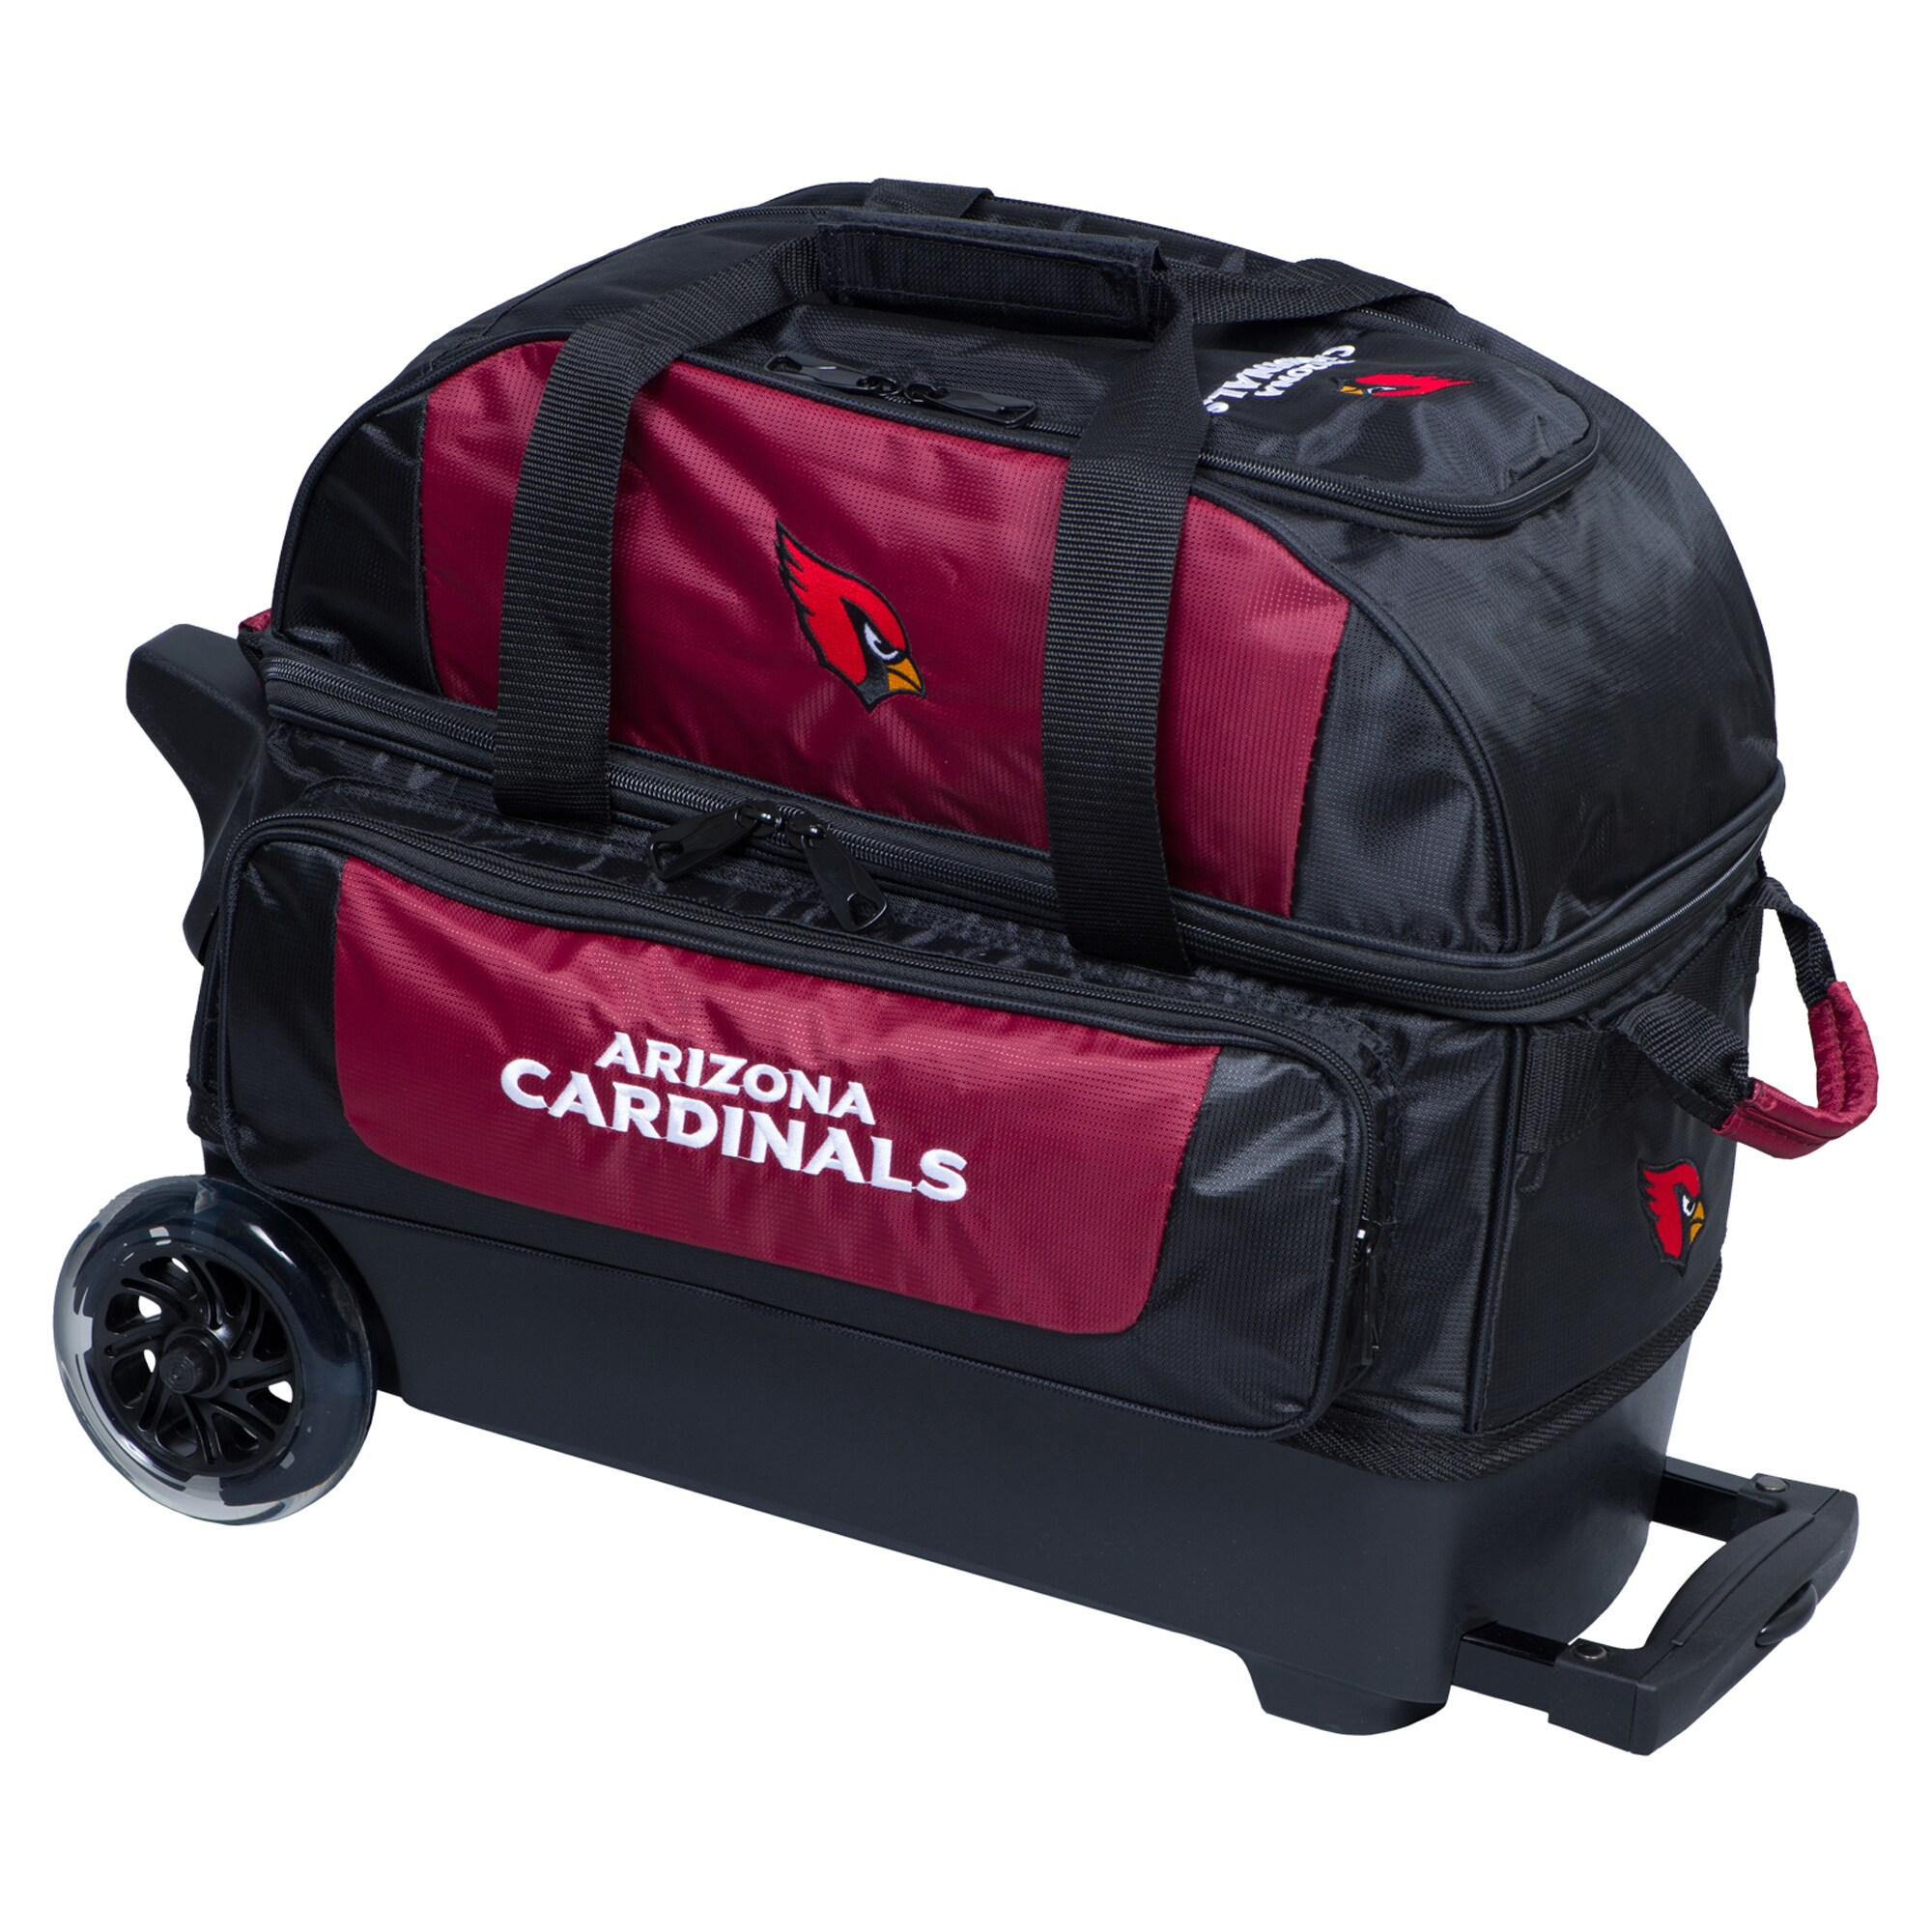 Arizona Cardinals Two-Ball Roller Bowling Bag - Cardinal